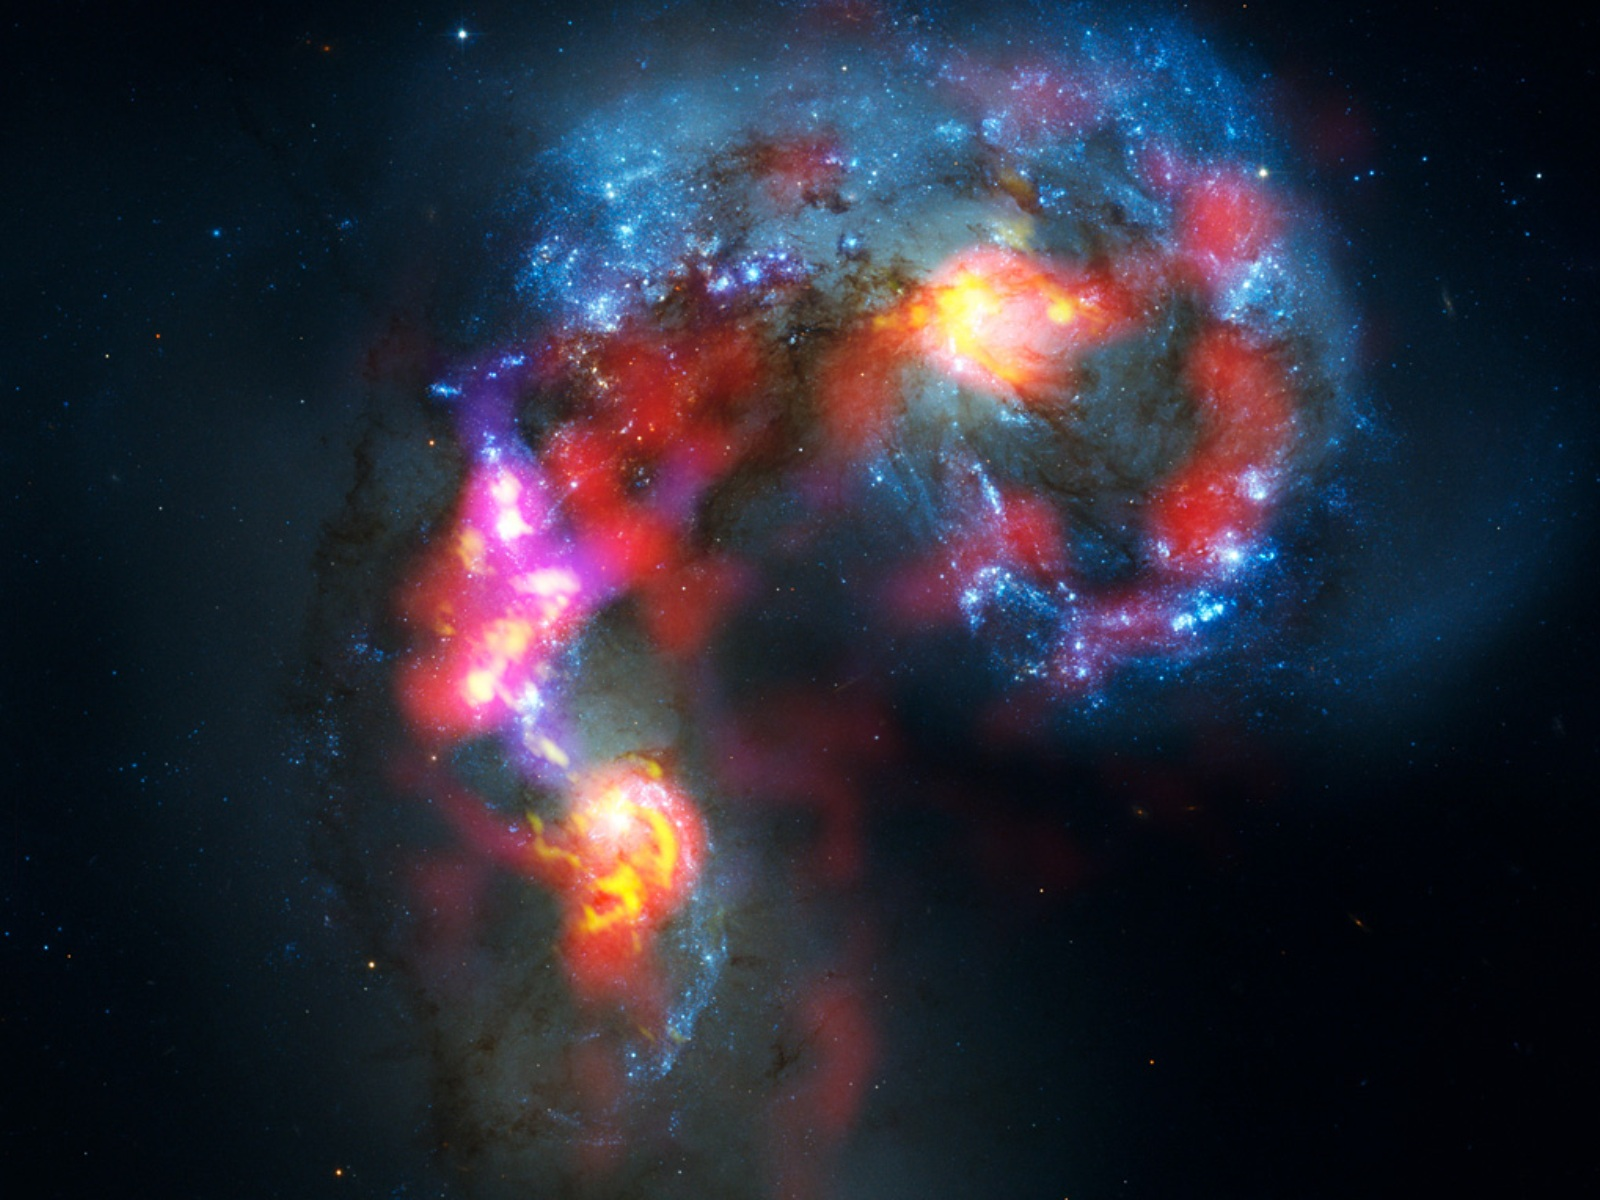 ALMA Telescope's First Image